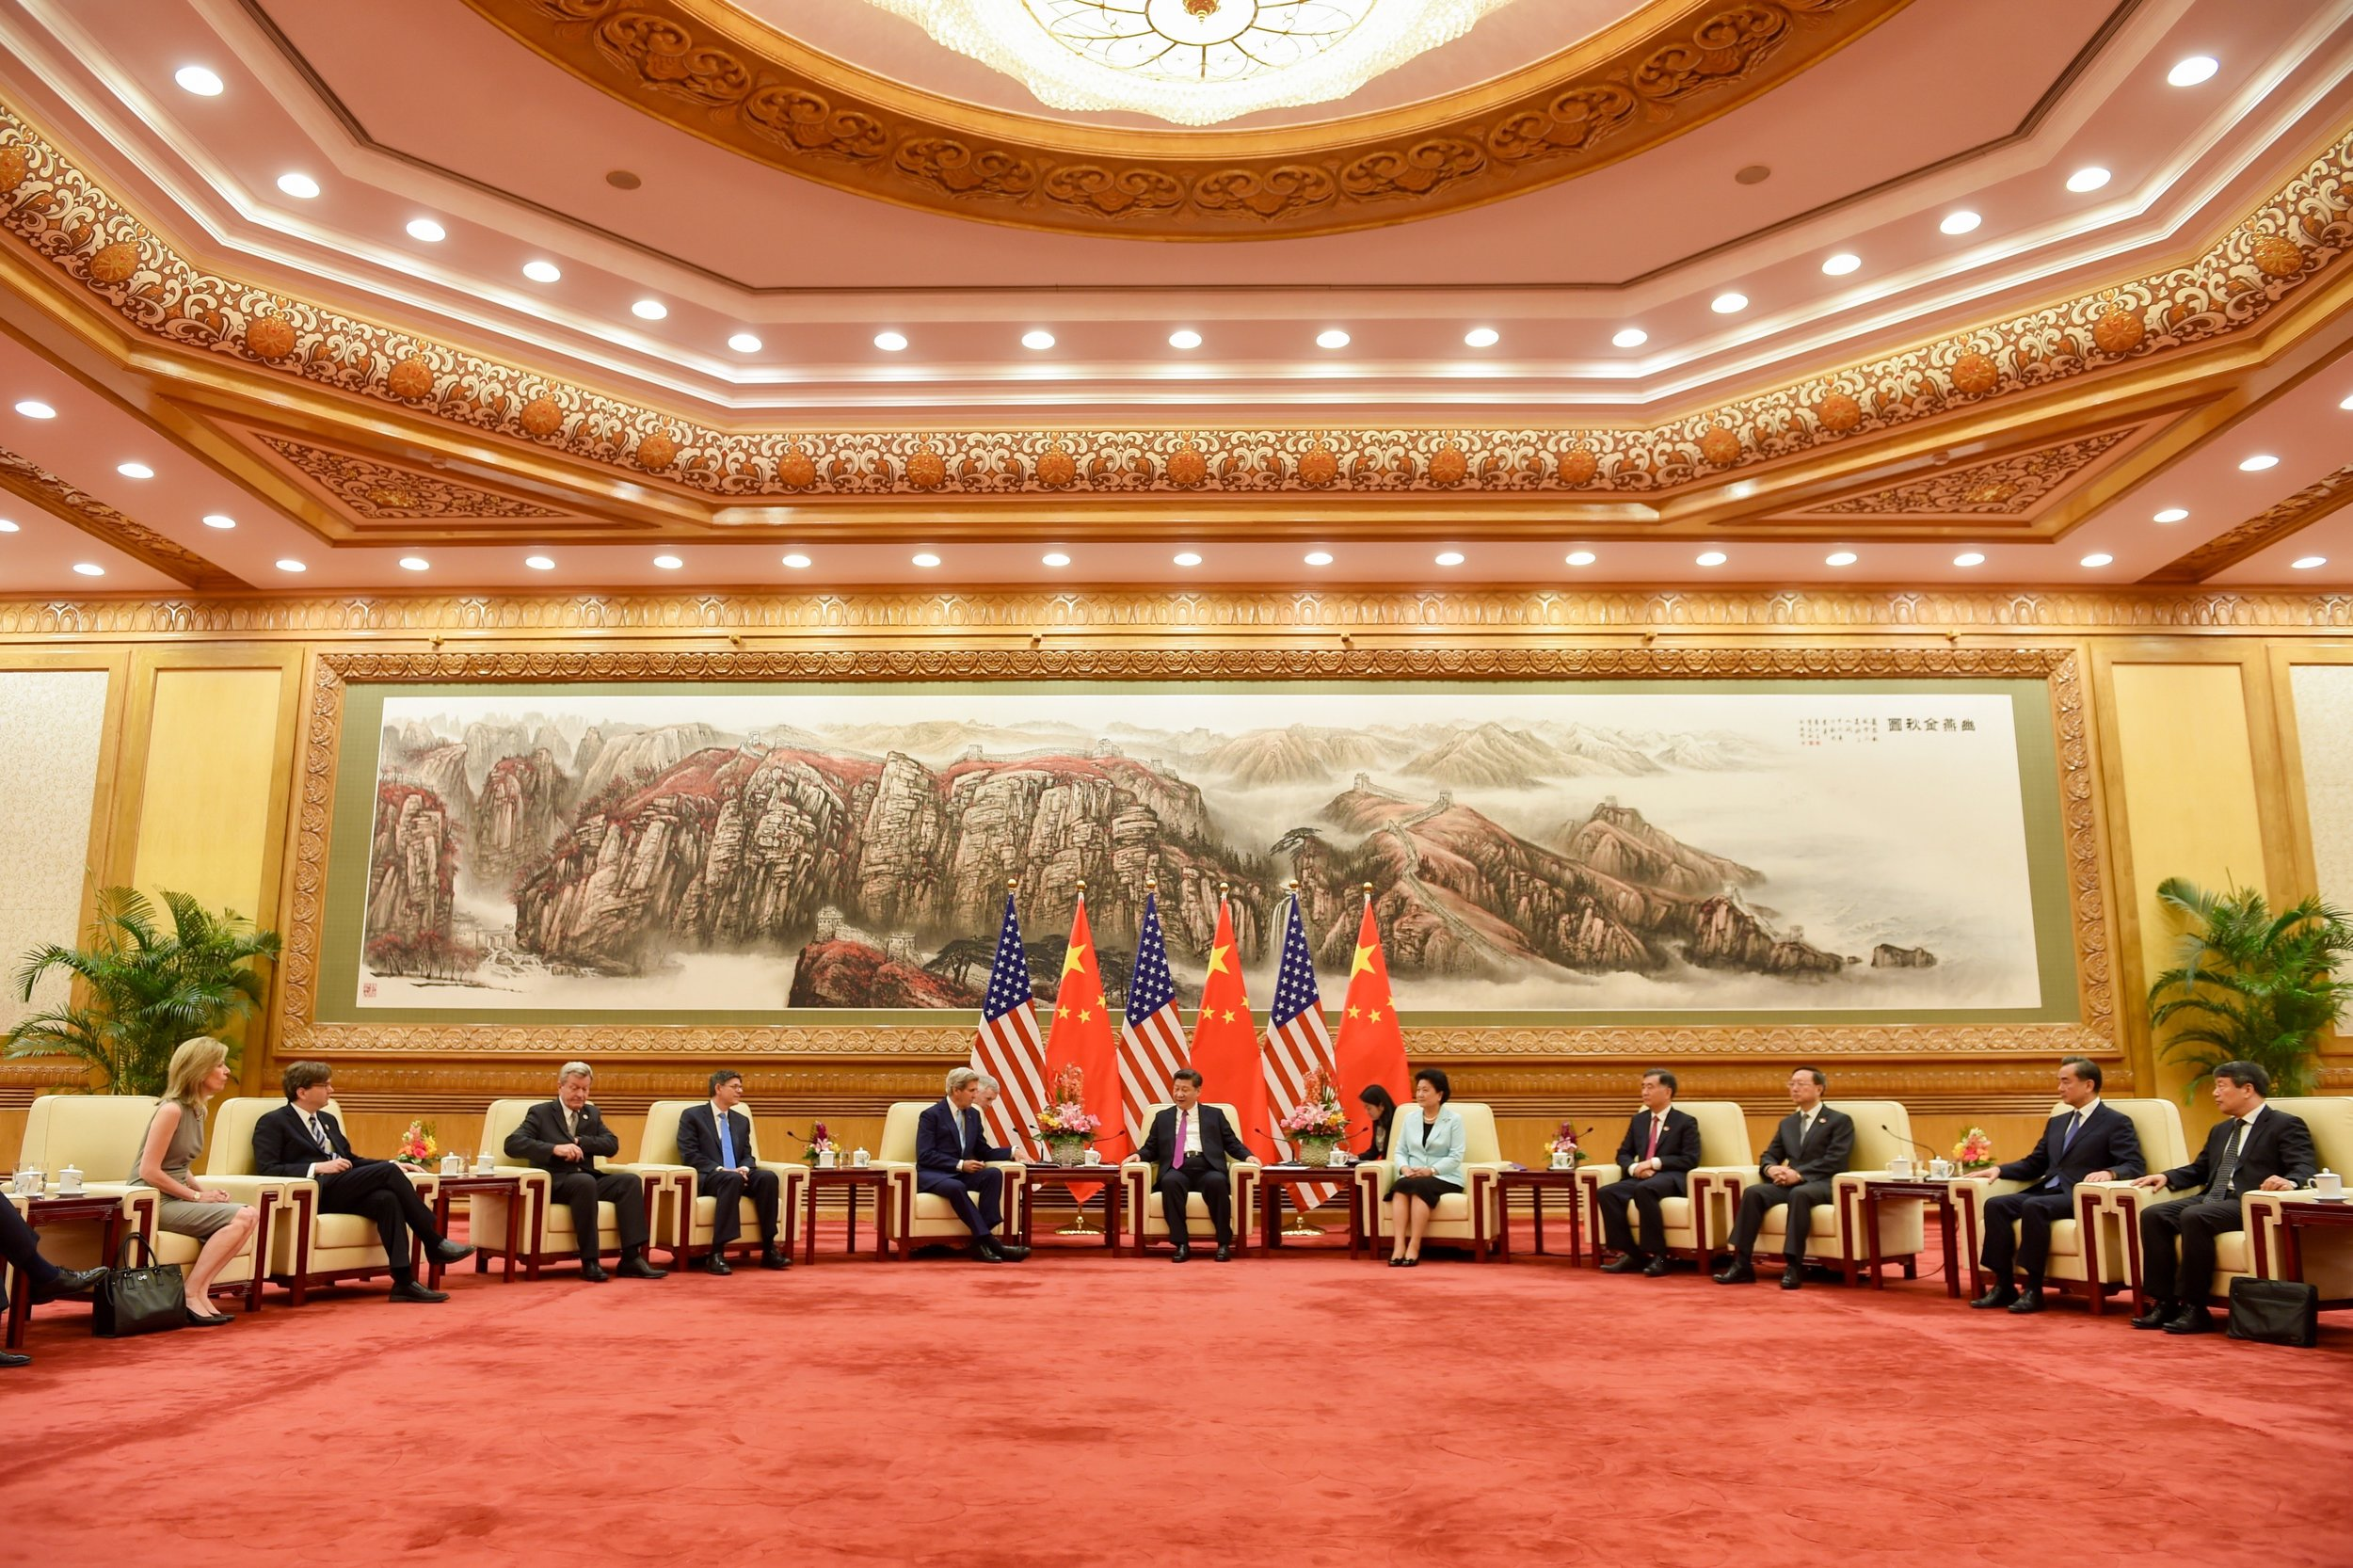 A meeting of the U.S.-Chinese delegations at the GHOP, built in just 10 months.